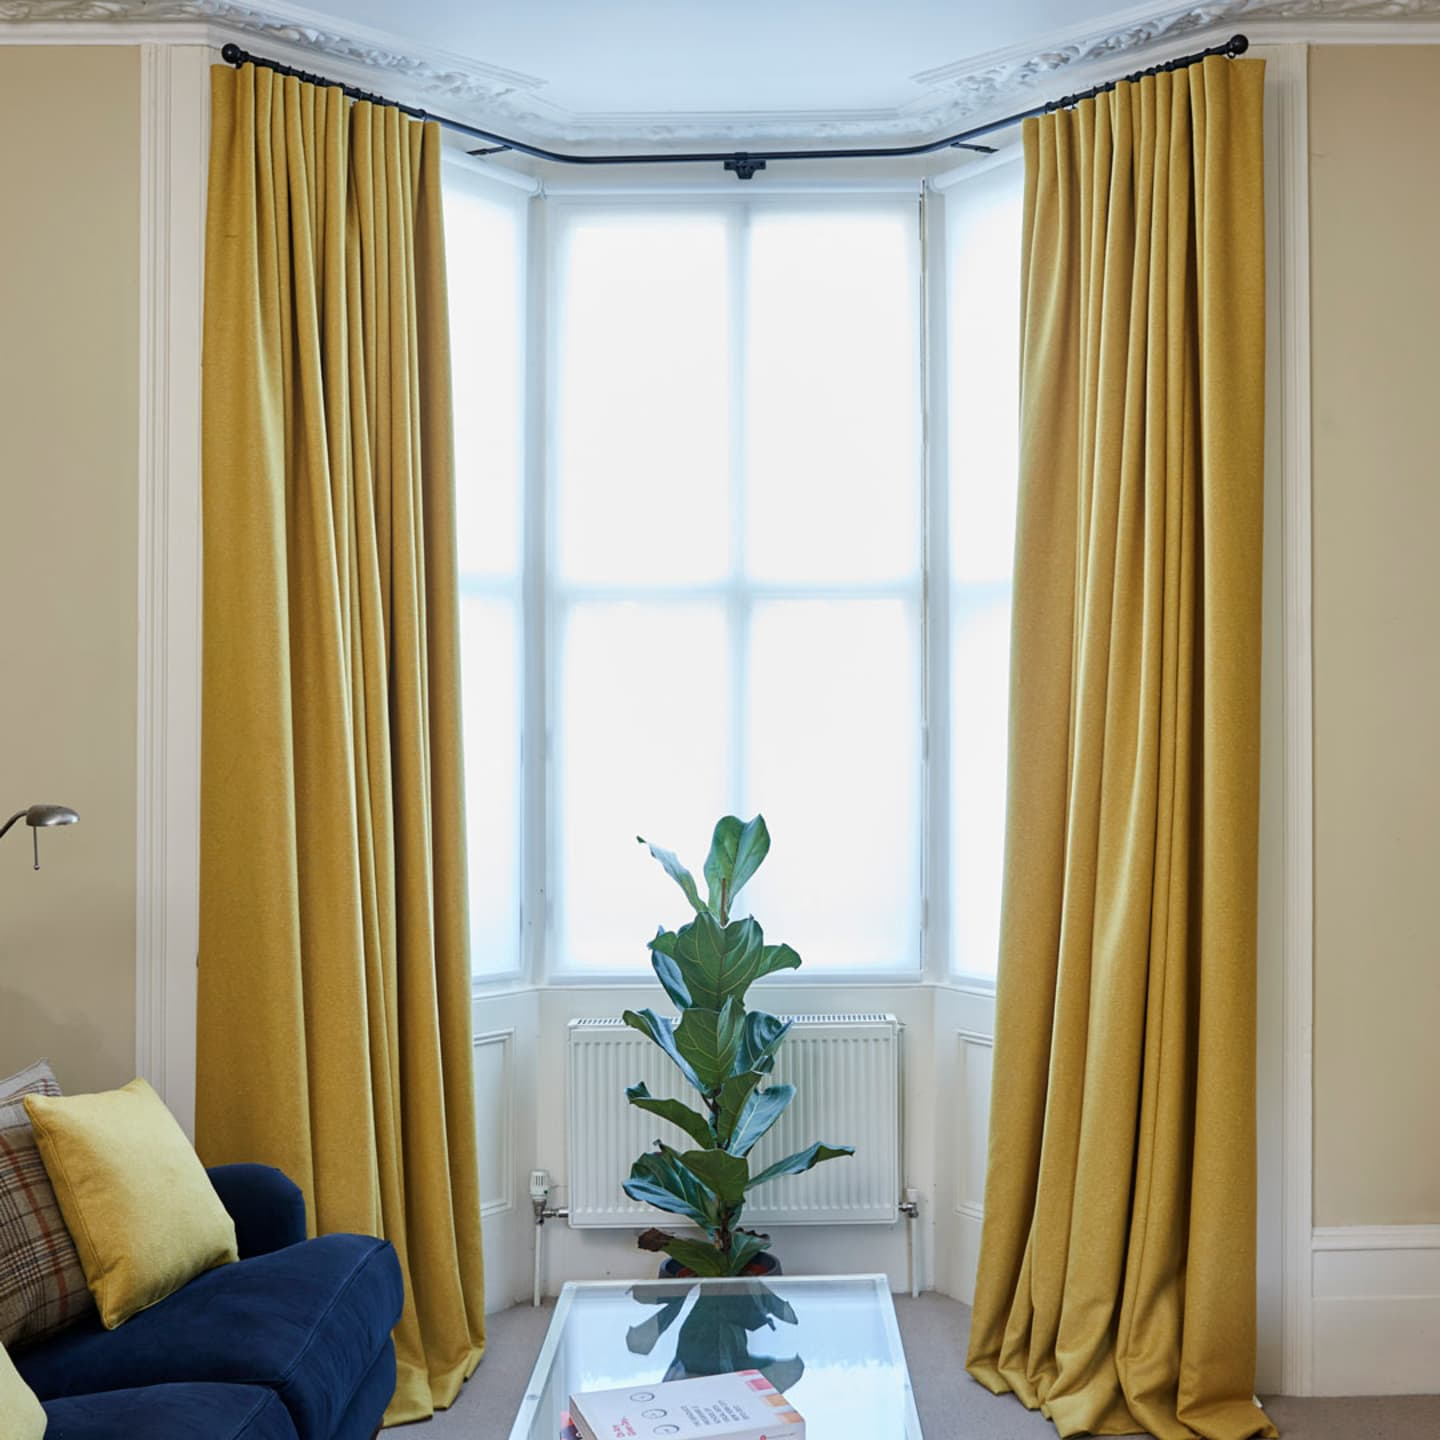 Classic town house interior with yellow and blue features